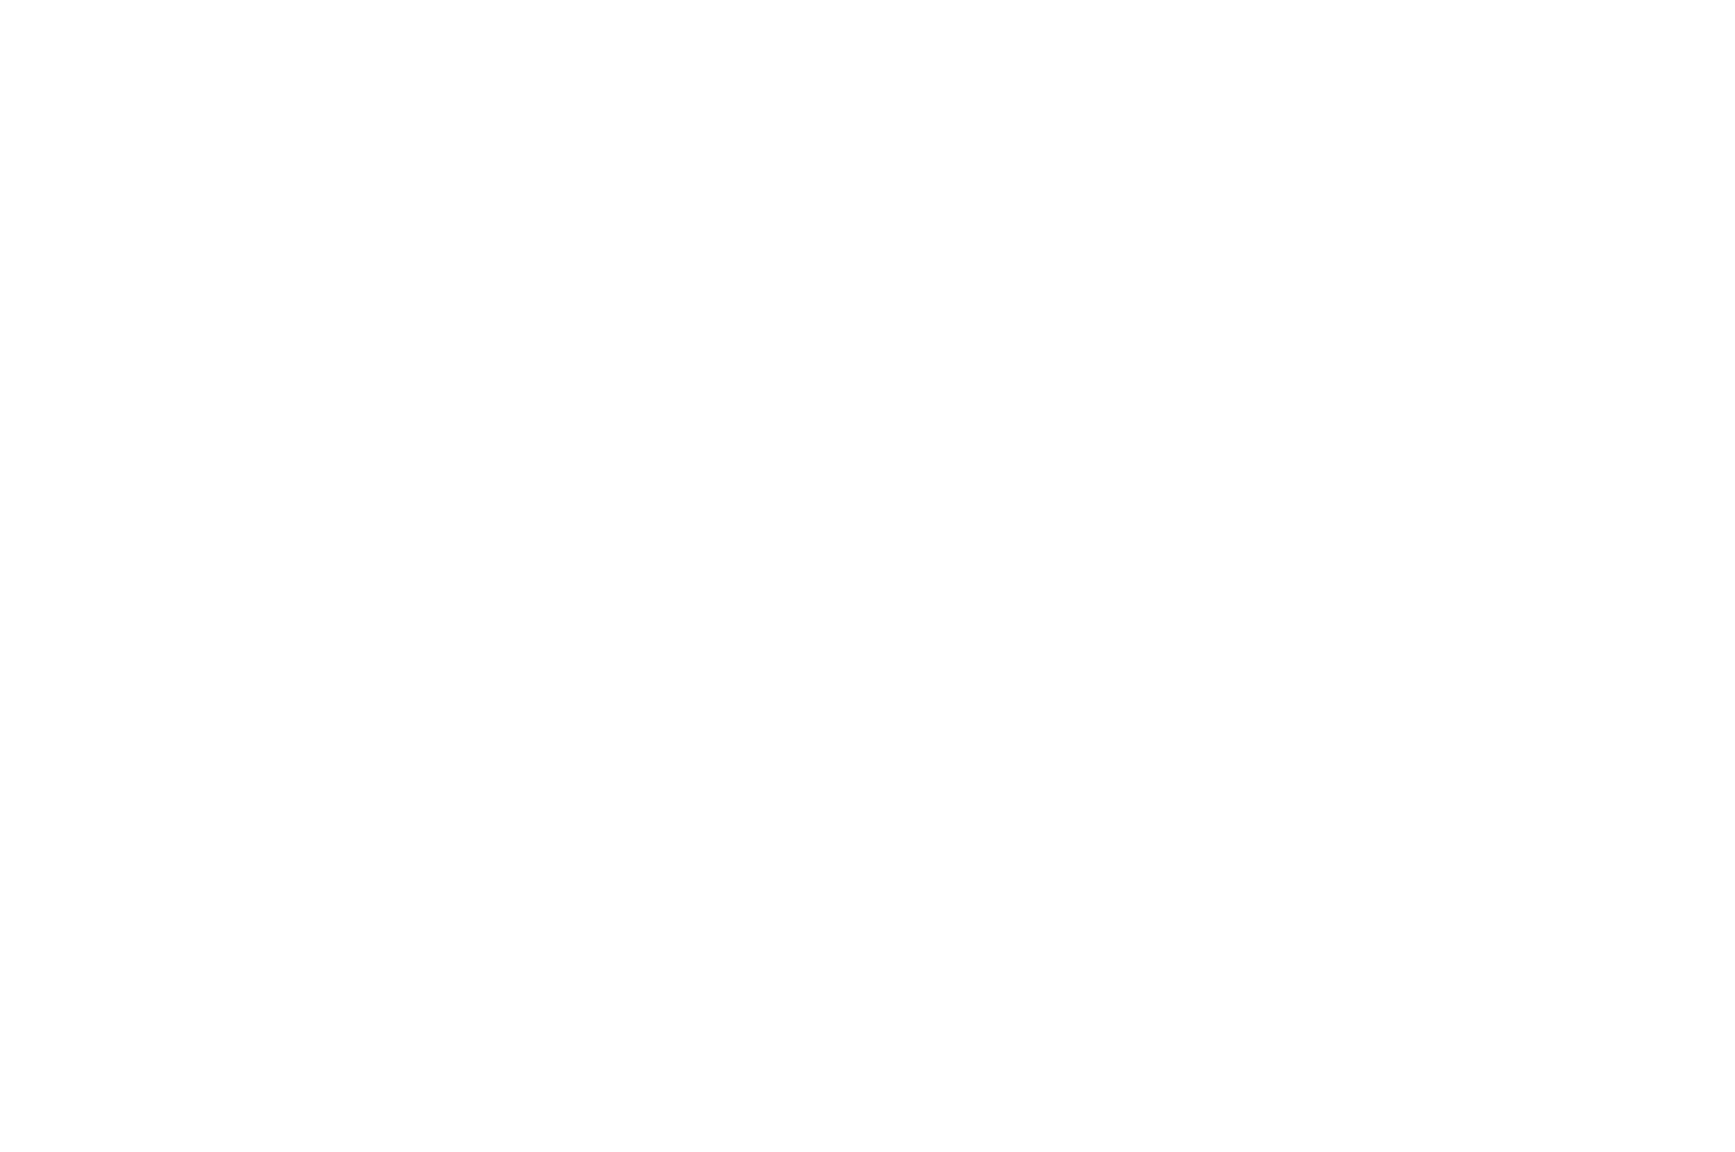 OFFICIAL SELECTION - Action on Film MegaFest 16th17th Annual Film Festival and Writers Competition 20202021 - 2021